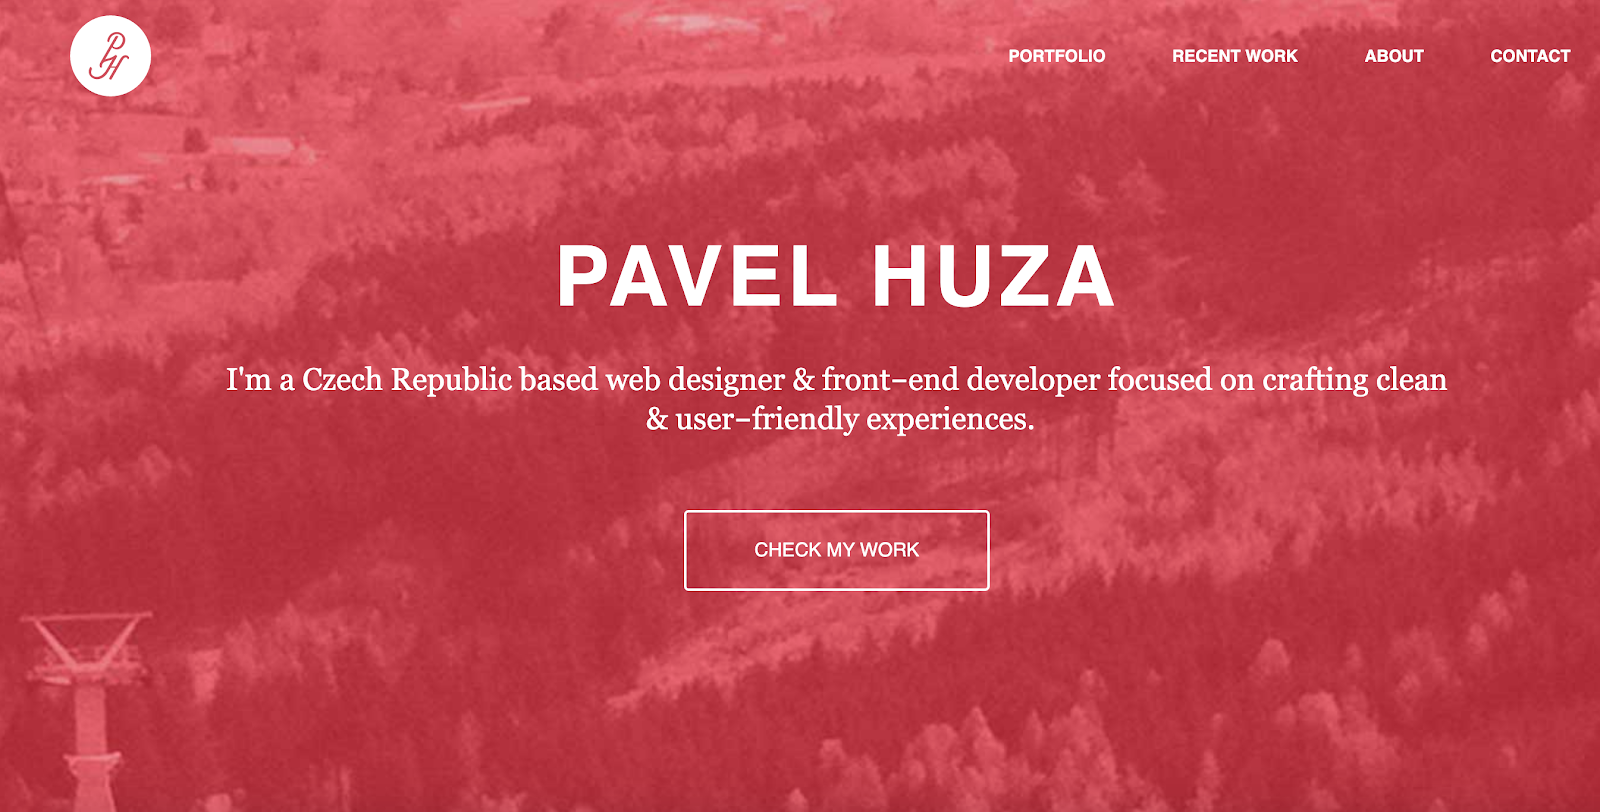 Web Developer Portfolio of Pavel Huza